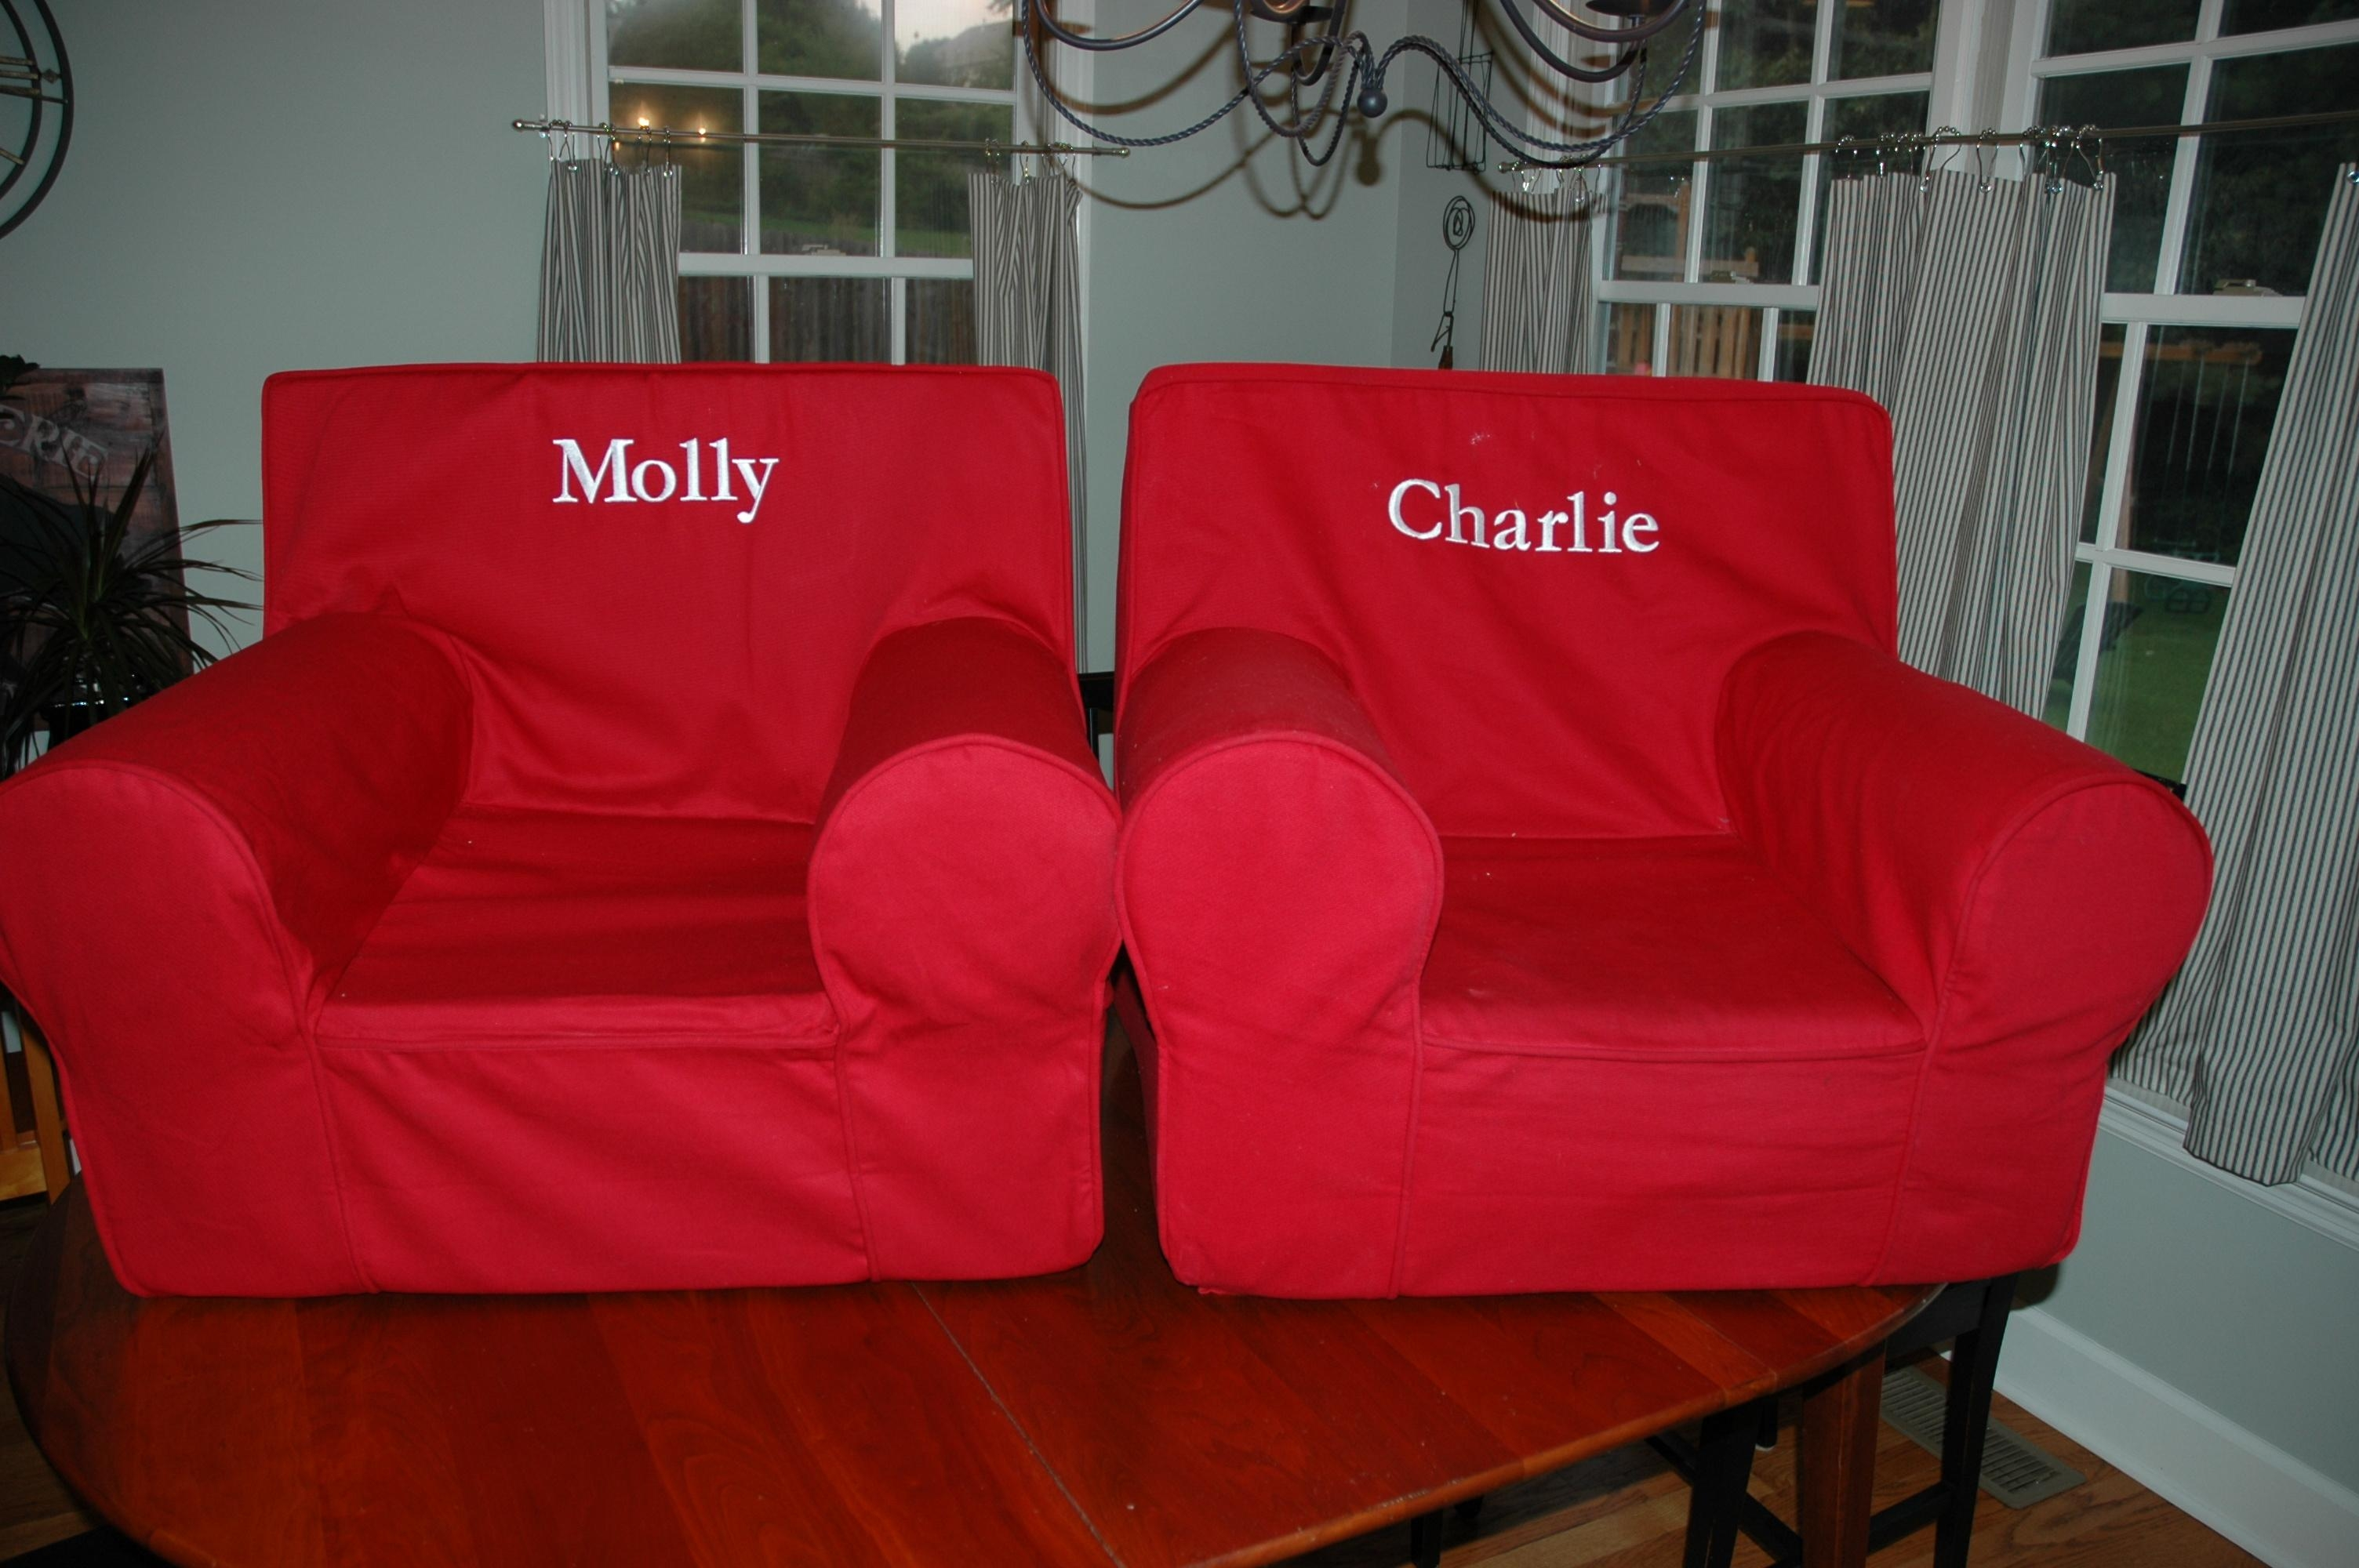 How I Saved $54 On A Pottery Barn Anywhere Chair Intended For Pottery Barn Chair Slipcovers (Image 5 of 20)